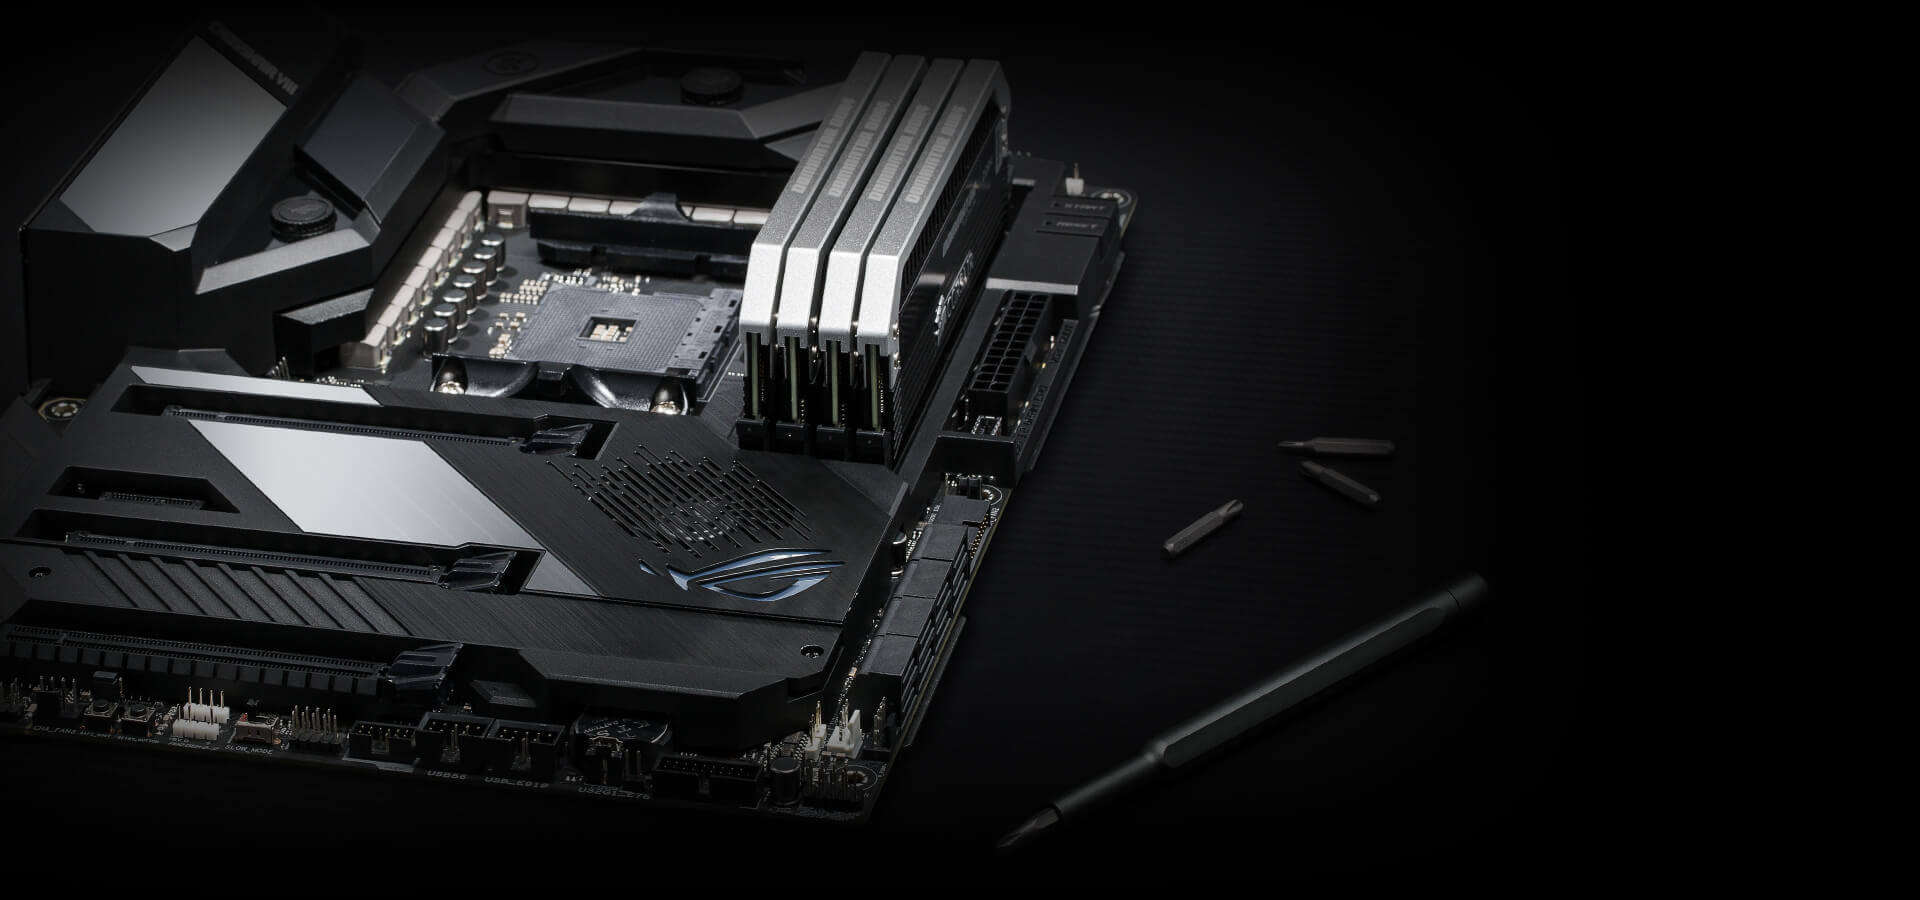 What is the best motherboard for a Ryzen 9 3900X?